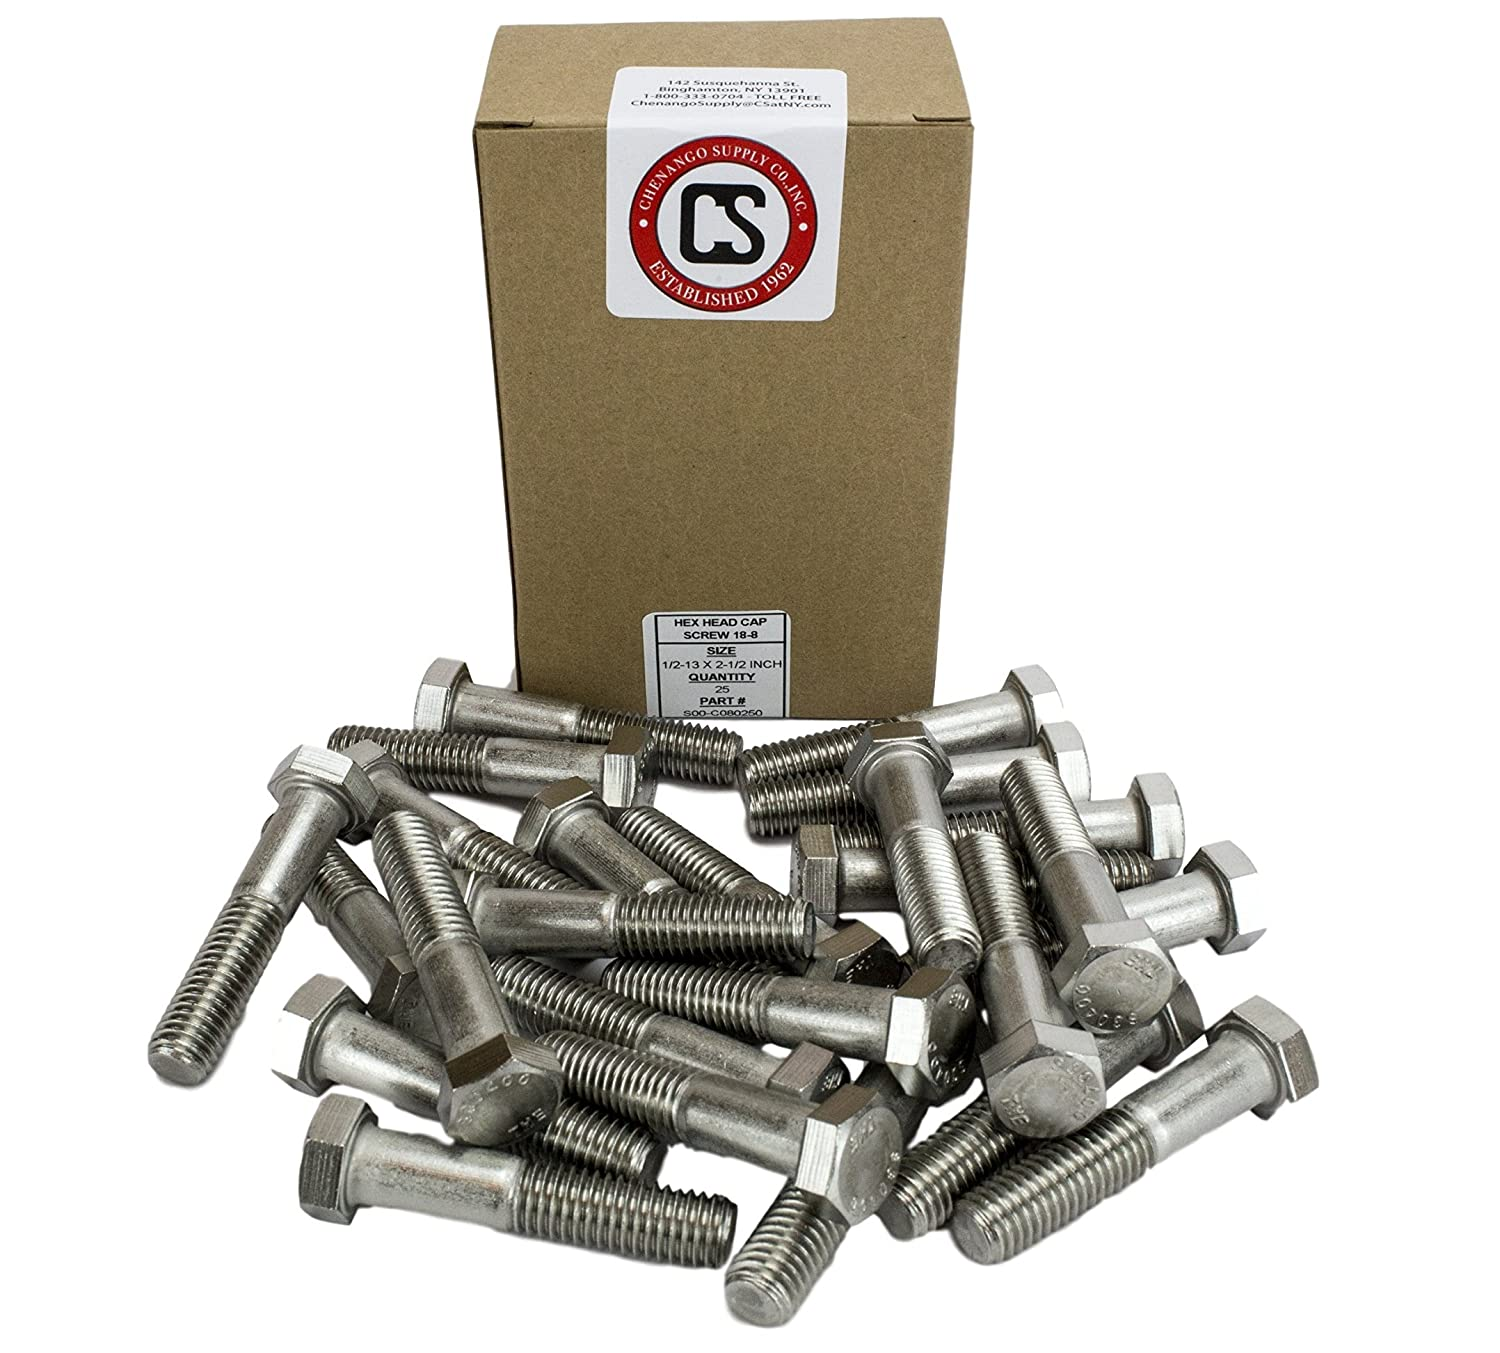 304 Stainless Steel 3//4 To 5 Lengths Available in Listing Stainless 1//2-13 x 5 Hex Head Bolts 25 pieces 1//2-13 x 5